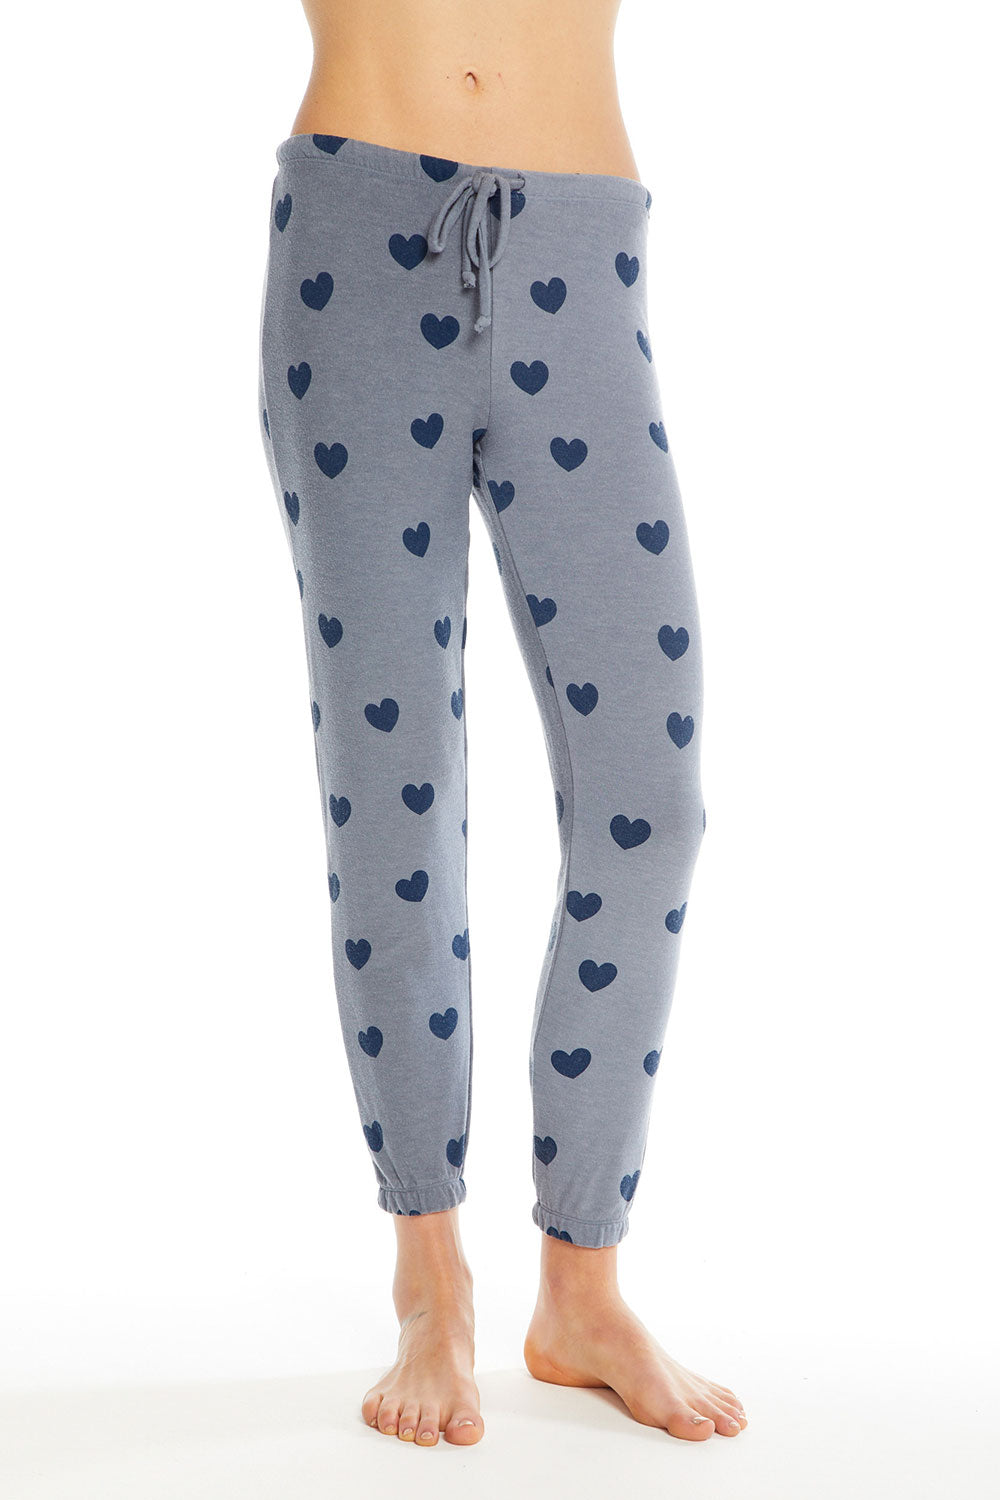 Blue Hearts Pant, WOMENS, chaserbrand.com,chaser clothing,chaser apparel,chaser los angeles